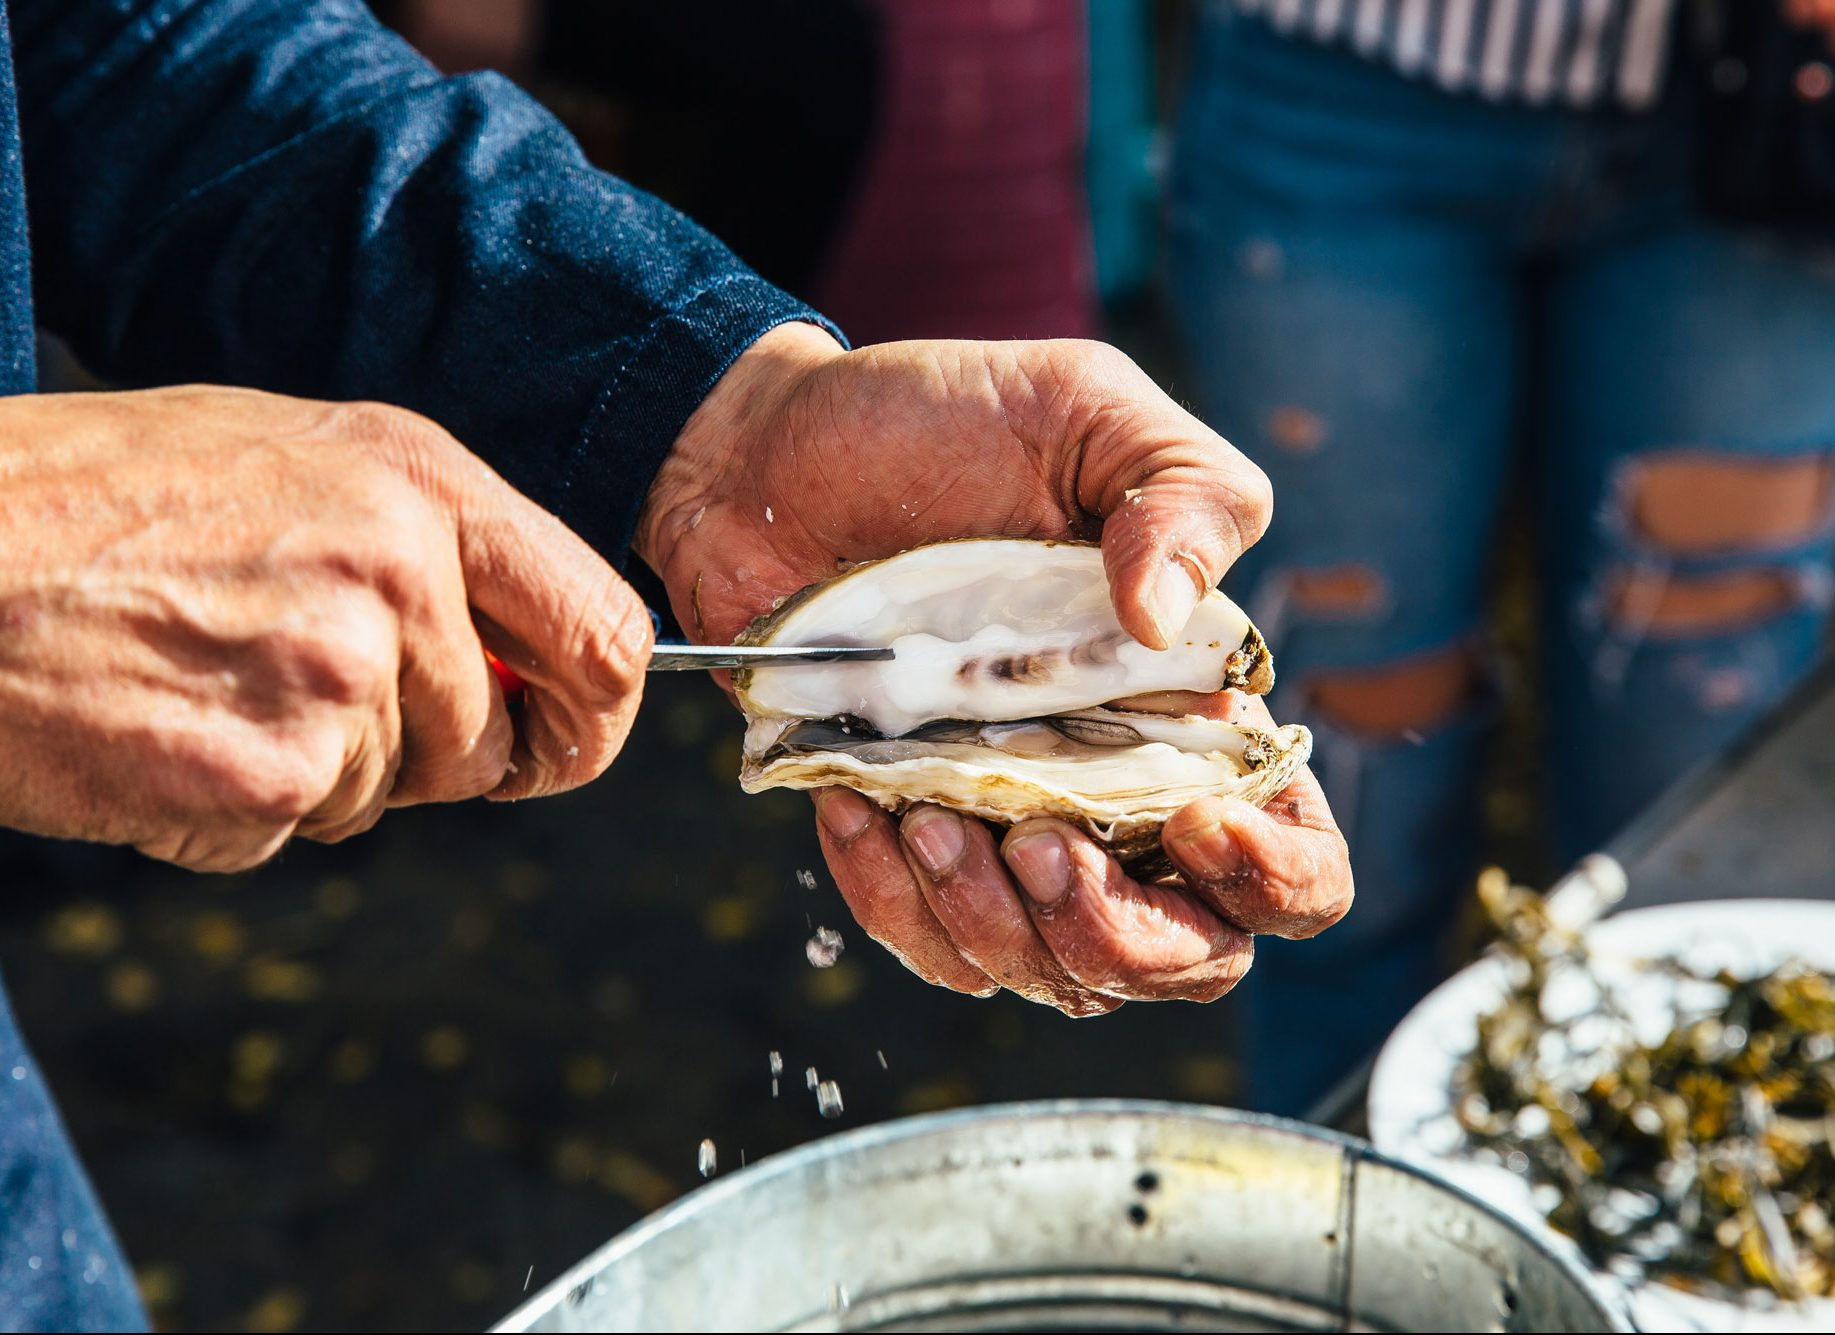 Strong hands expertly shucking fresh oysters.